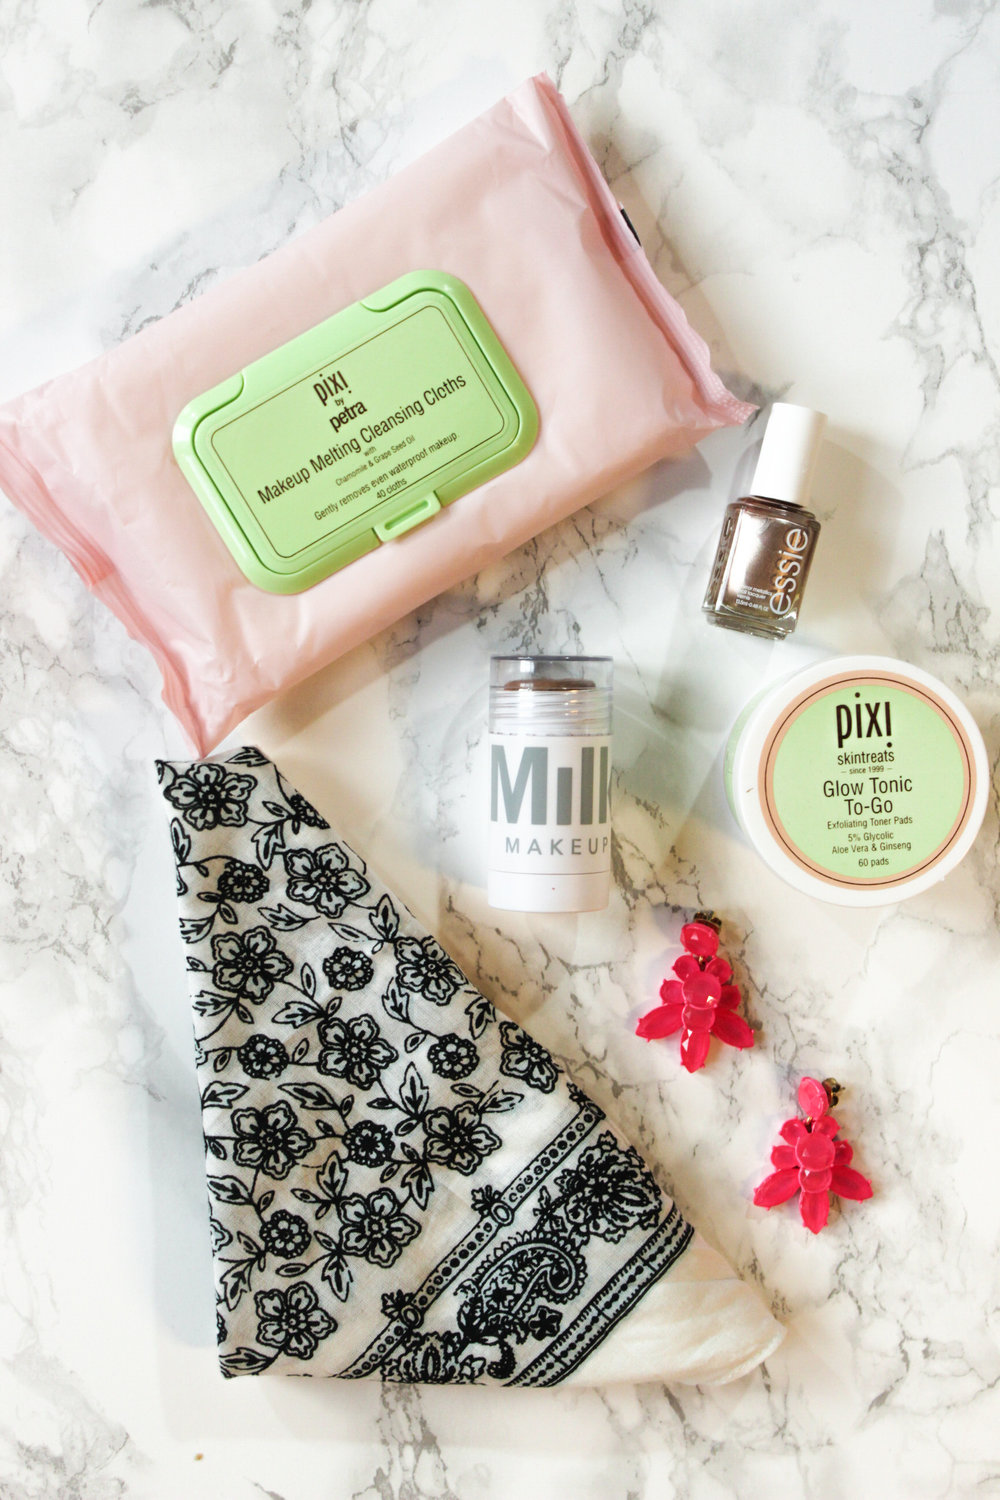 Pixi makeup melting cleansing cloths, pixi glow tonic pads, j.crew bandana, milk makeup cream bronzer, essie penny talk, j.crew statement earrings